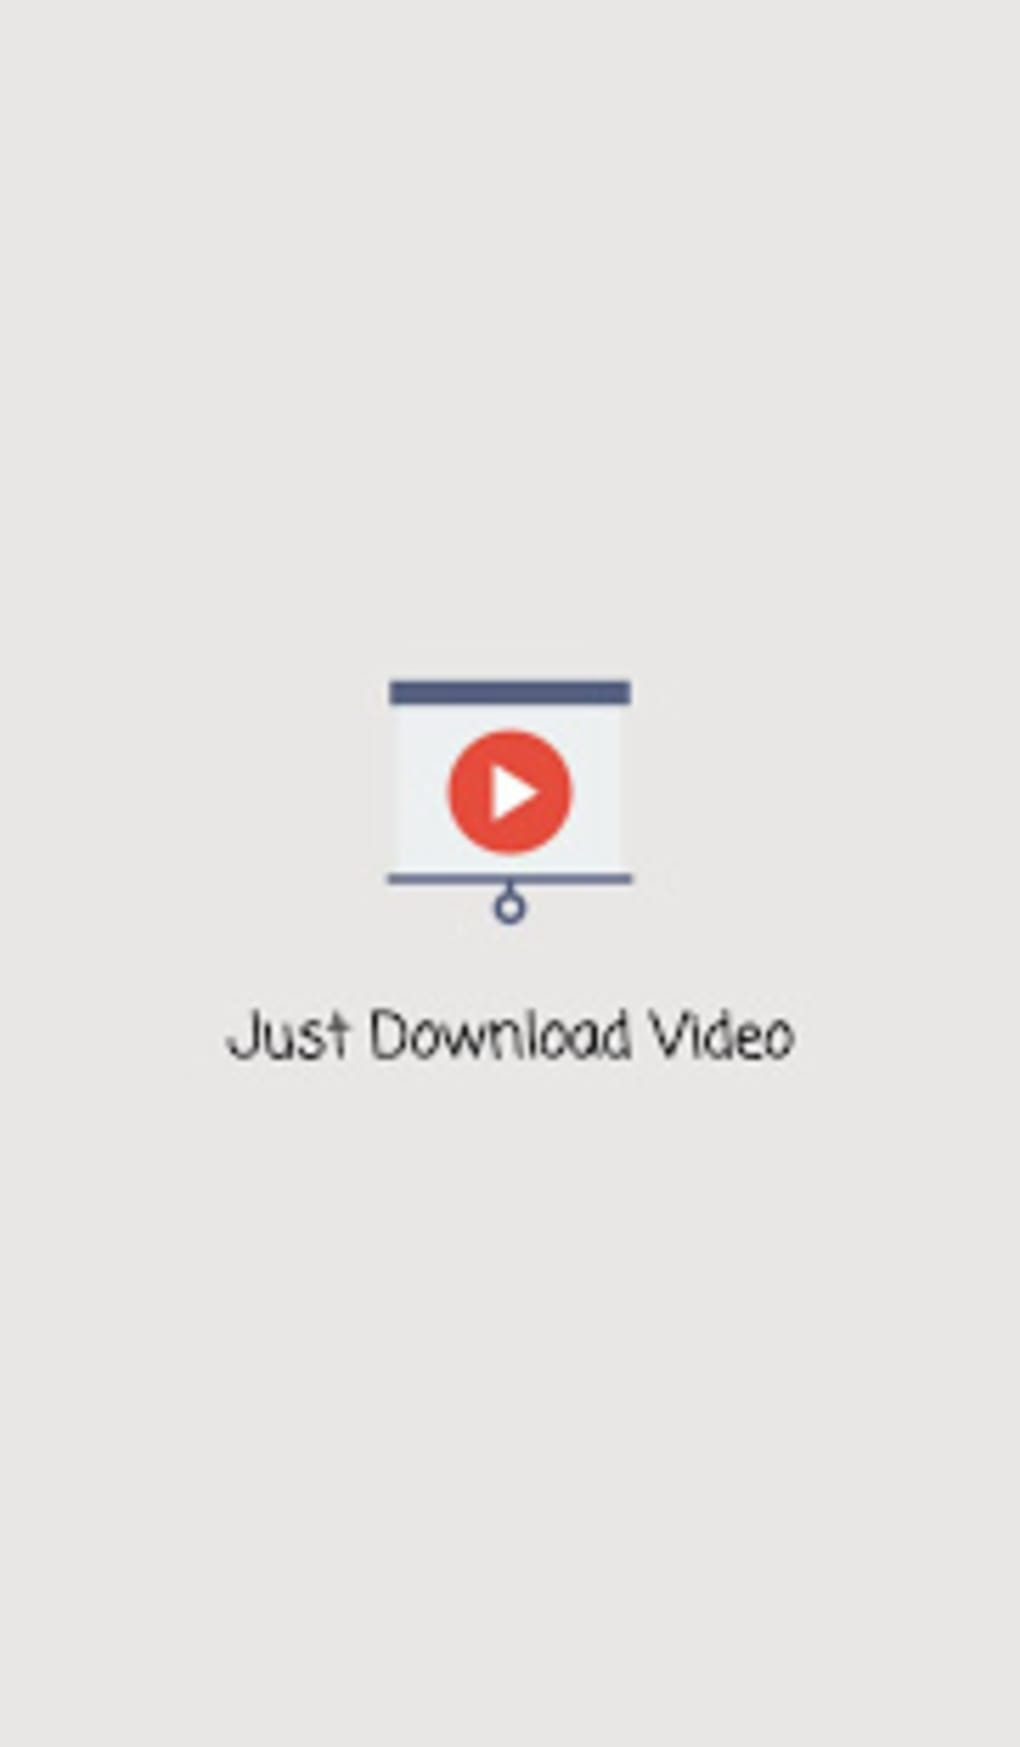 Turbo Video Downloader HD:Download HDfile Video for Android